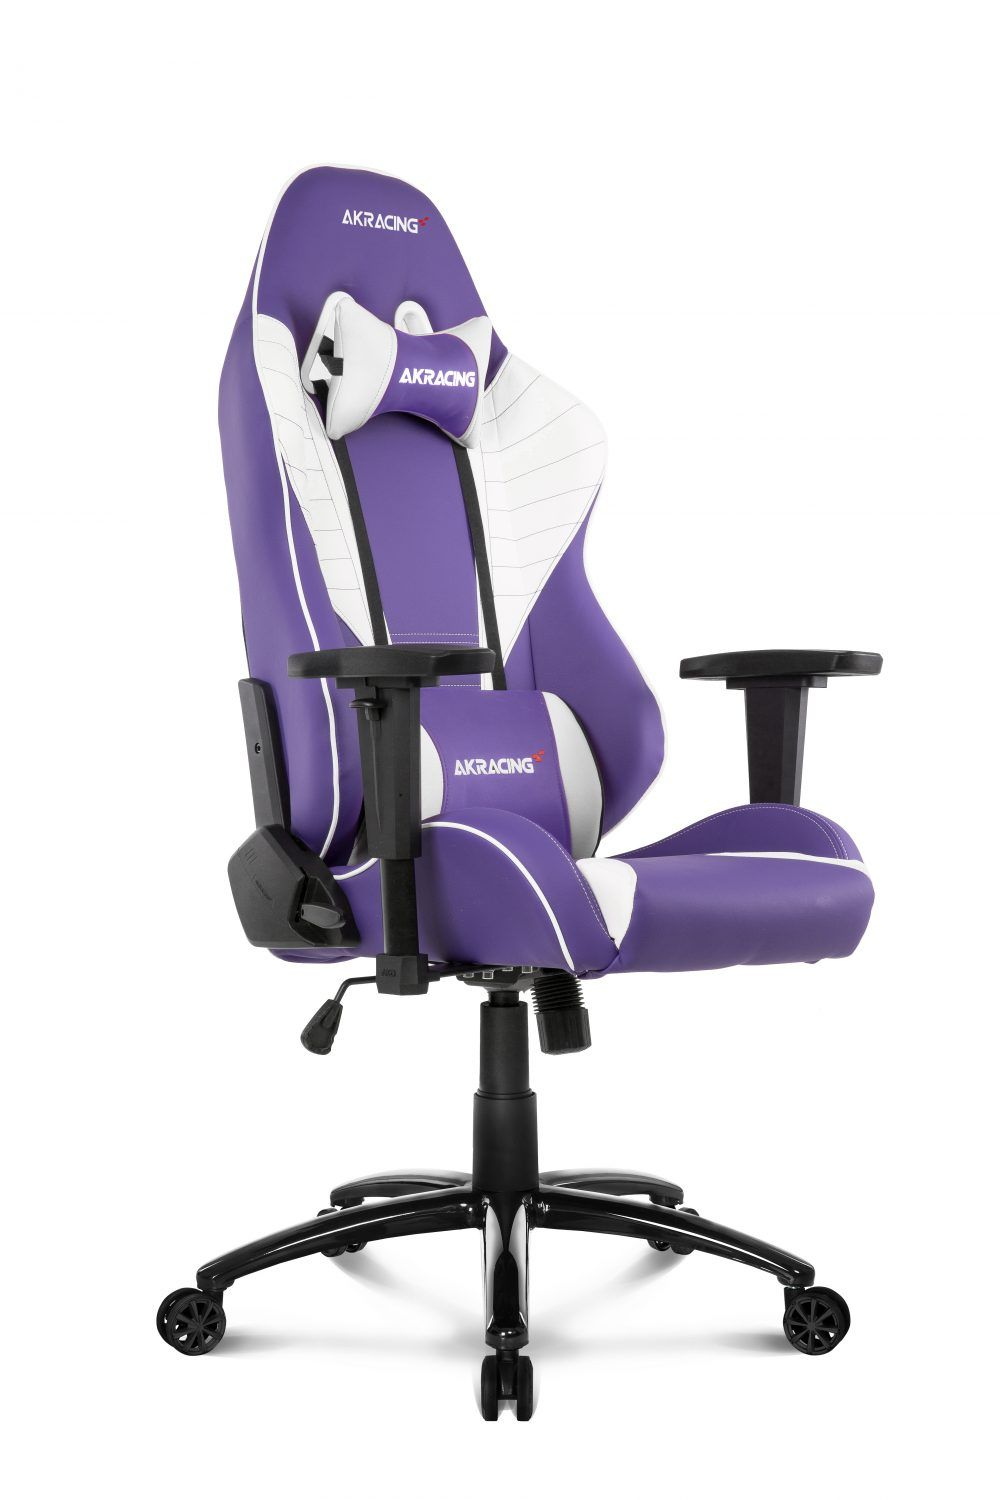 Akracing Sx Purple Lavender Gaming Chair Sx Model Takes Akracing